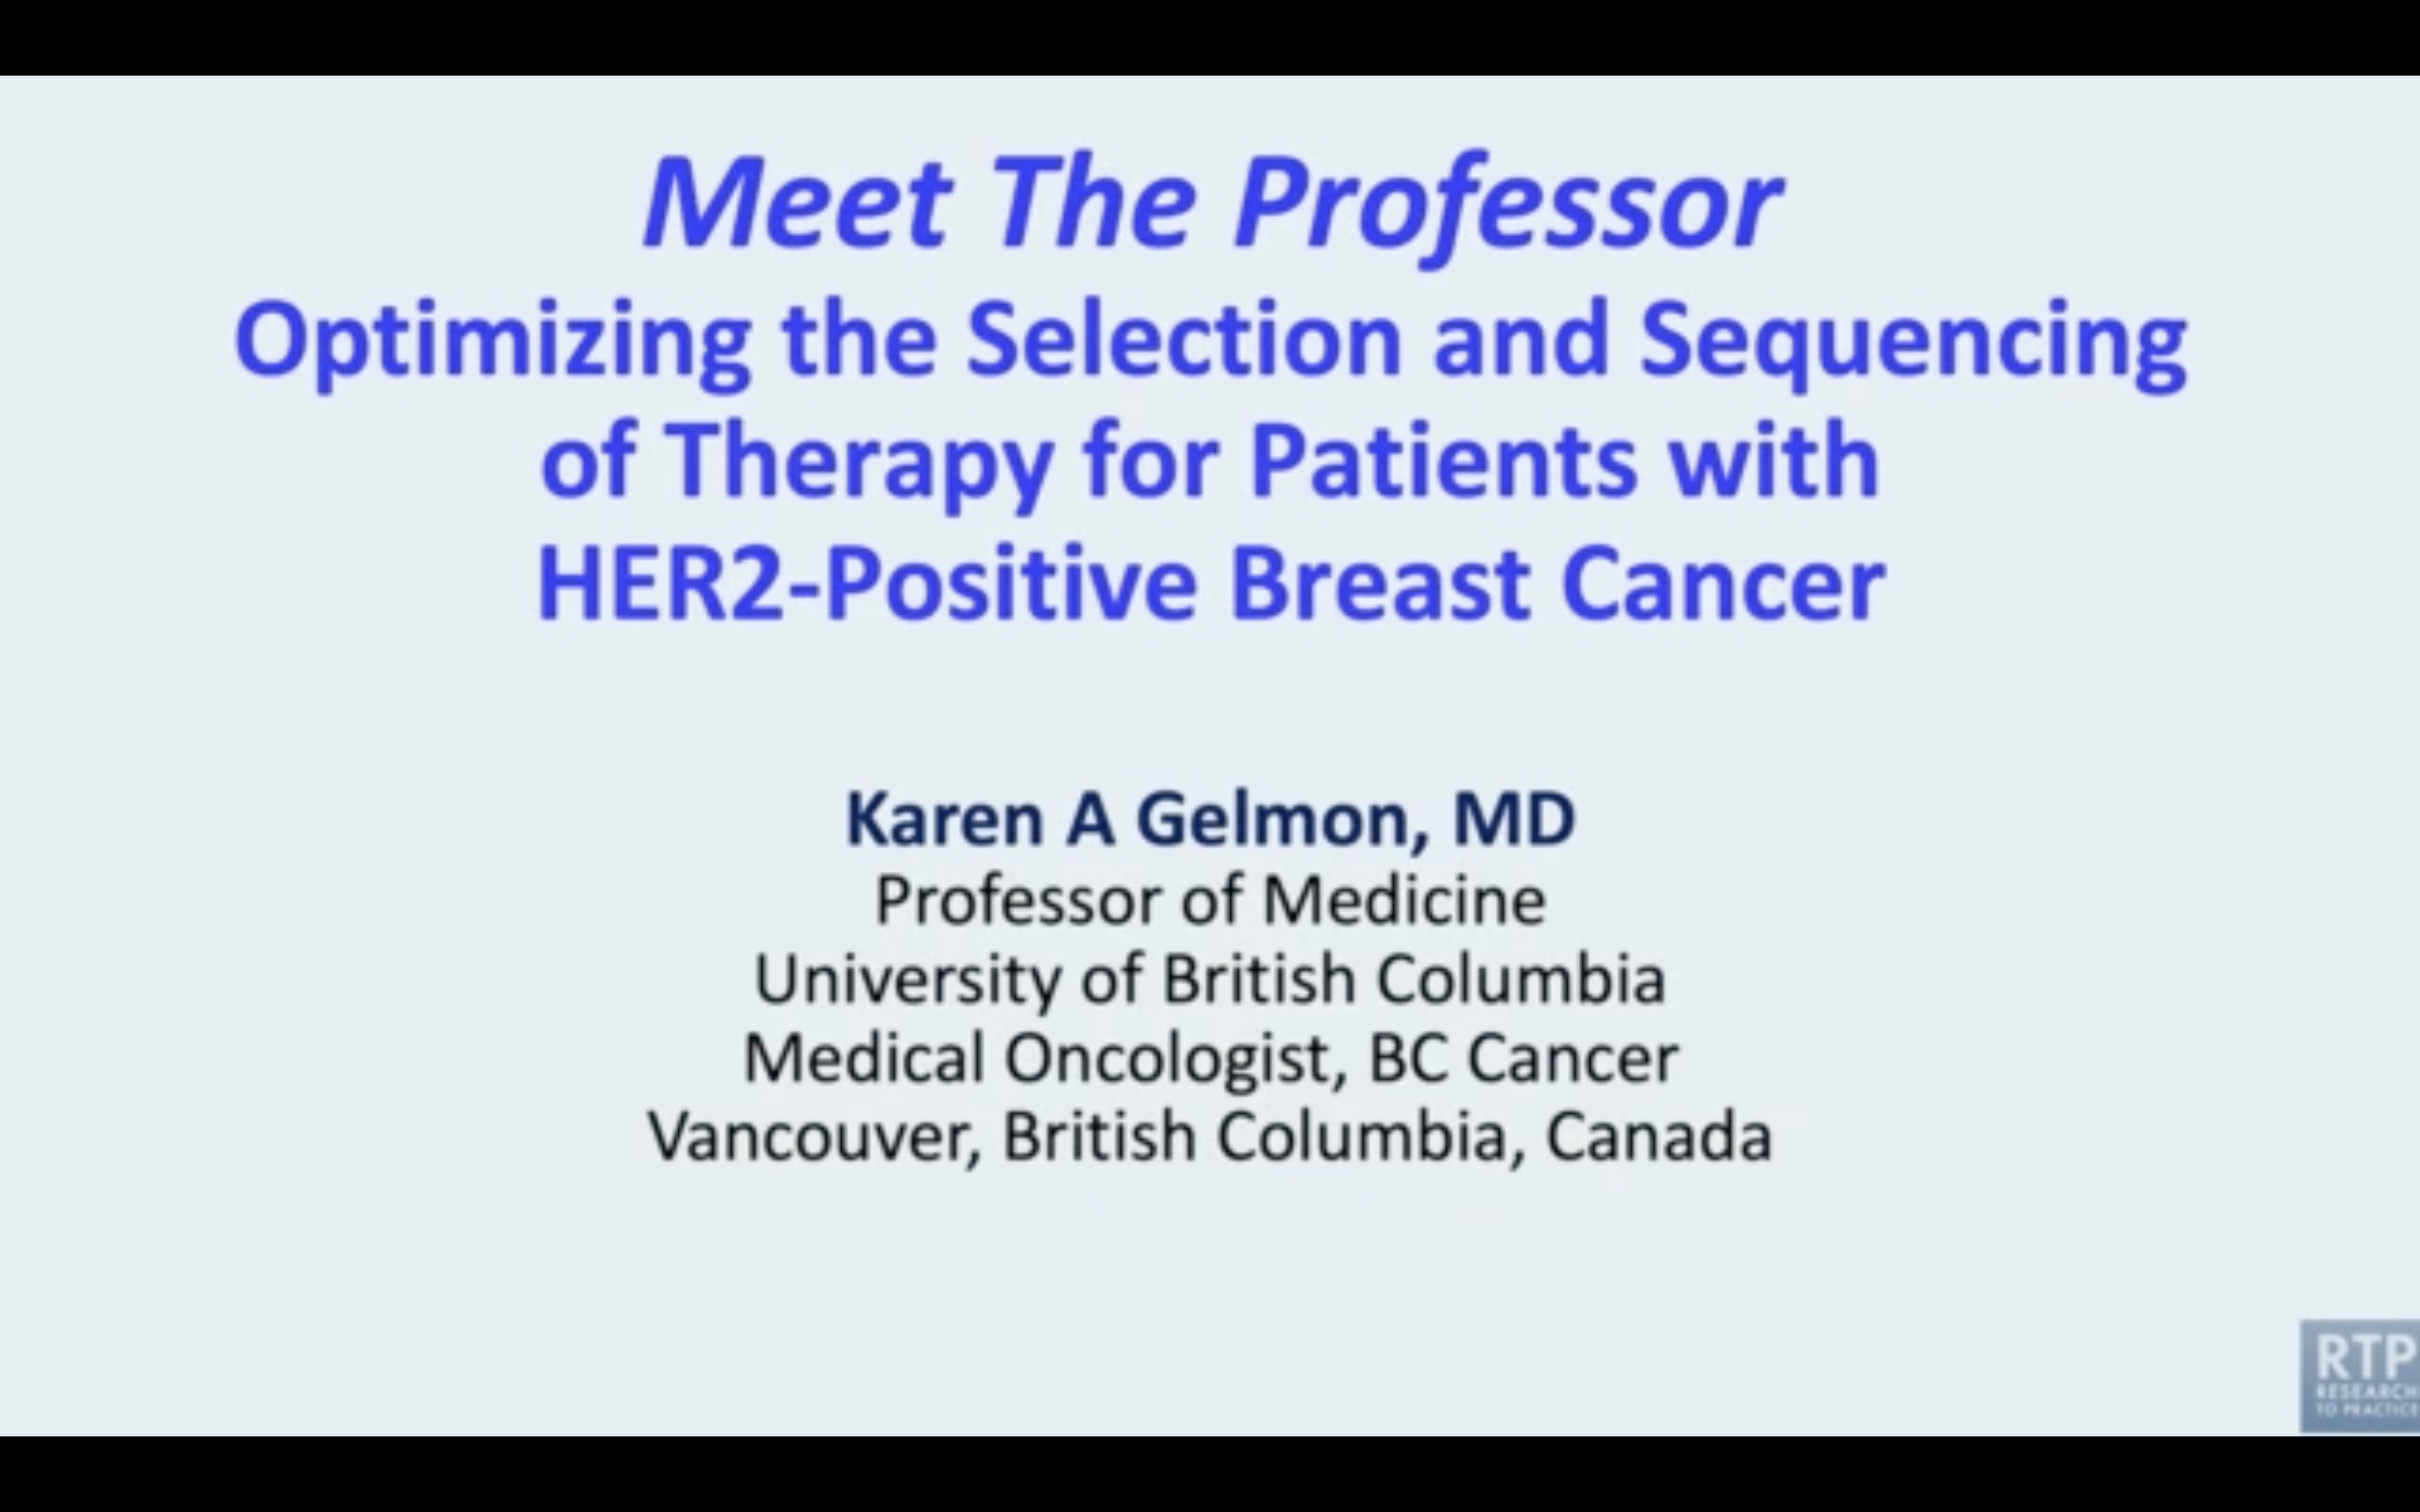 Artwork for HER2-Positive Breast Cancer | Meet The Professor: Optimizing the Selection and Sequencing of Therapy for Patients with HER2-Positive Breast Cancer — Part 1 of a 5-Part Series